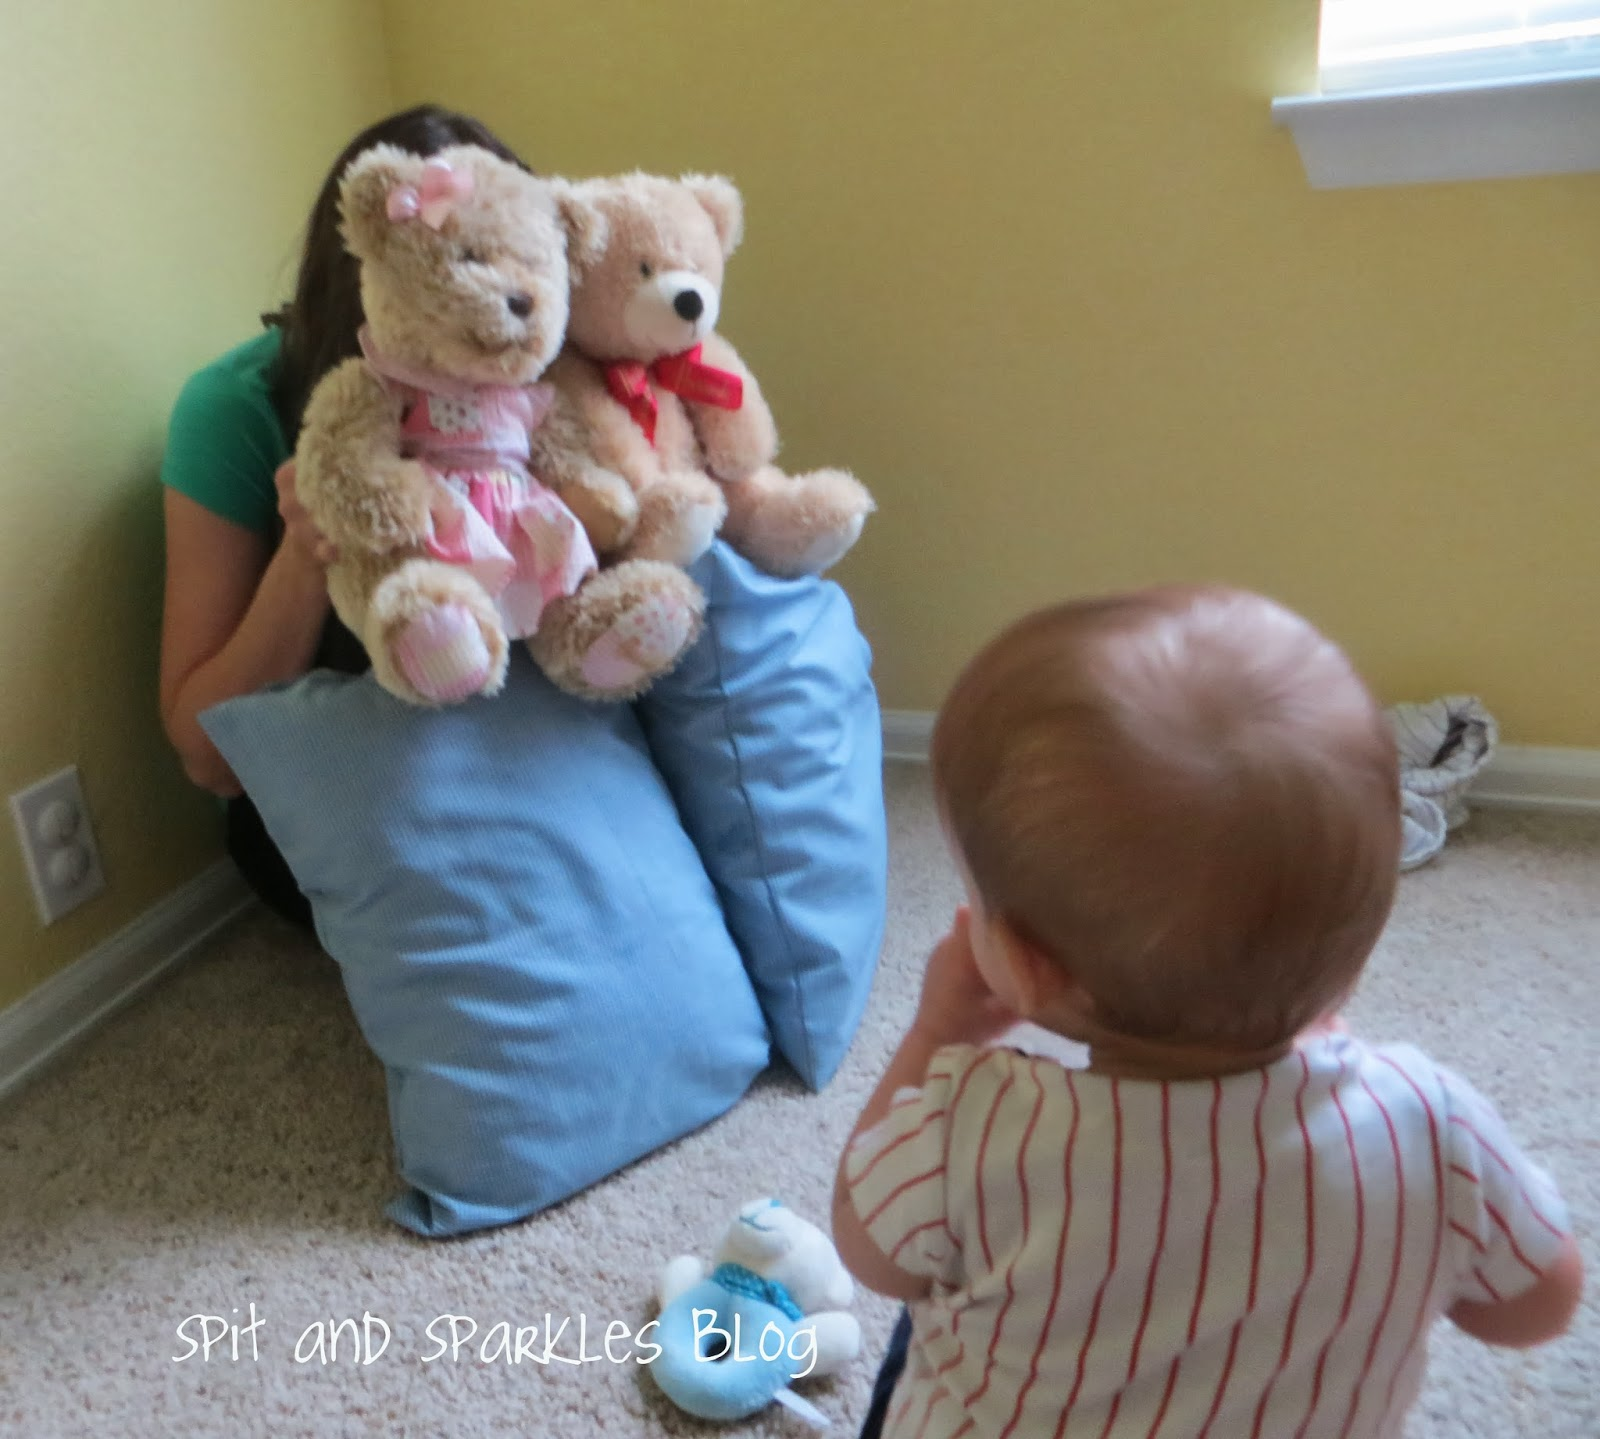 Strengthen baby's problem solving & memory skills and teach object permanence with hide n seek. #totschool #homeschool #babyplay